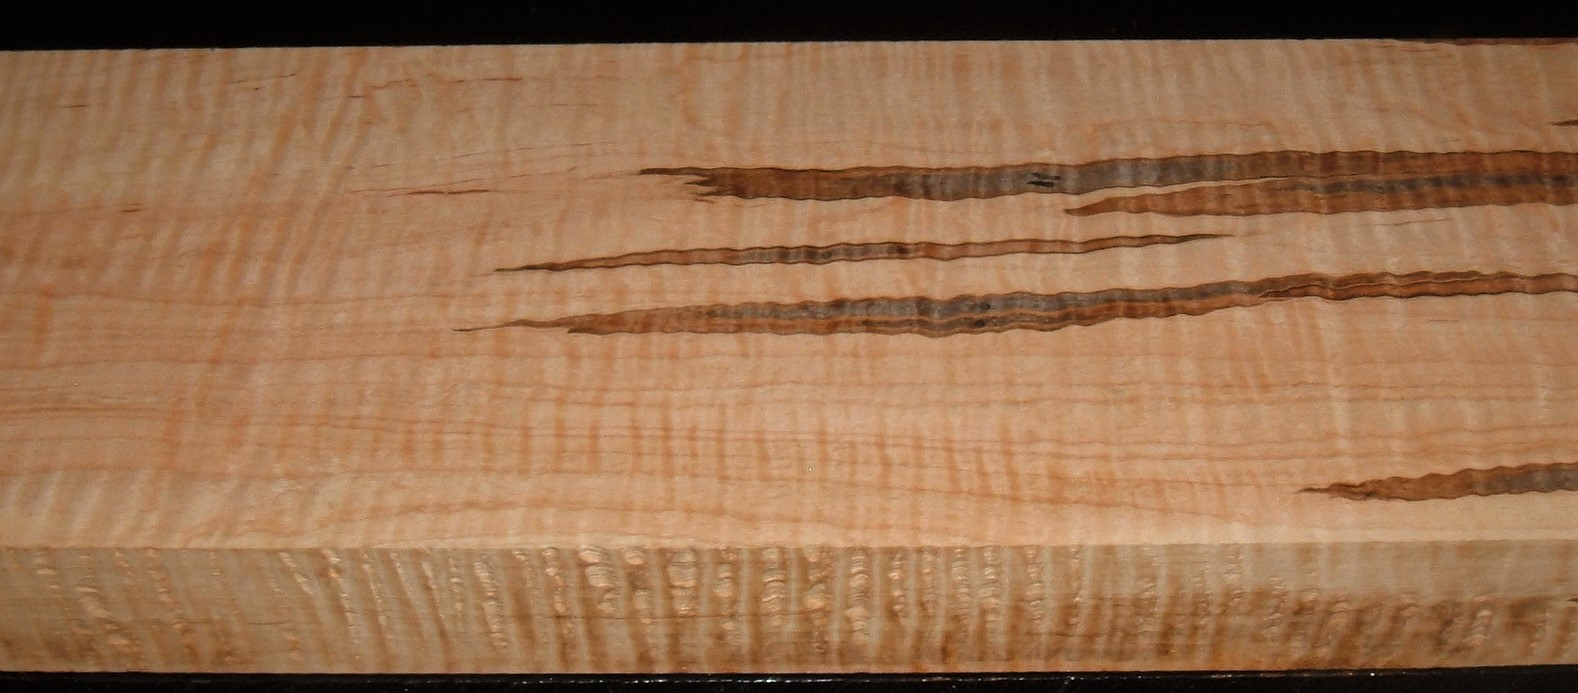 AM2003-62JJE, 1-3/4x7-1/4x43, Curly Tiger Ambrosia Wormy Maple